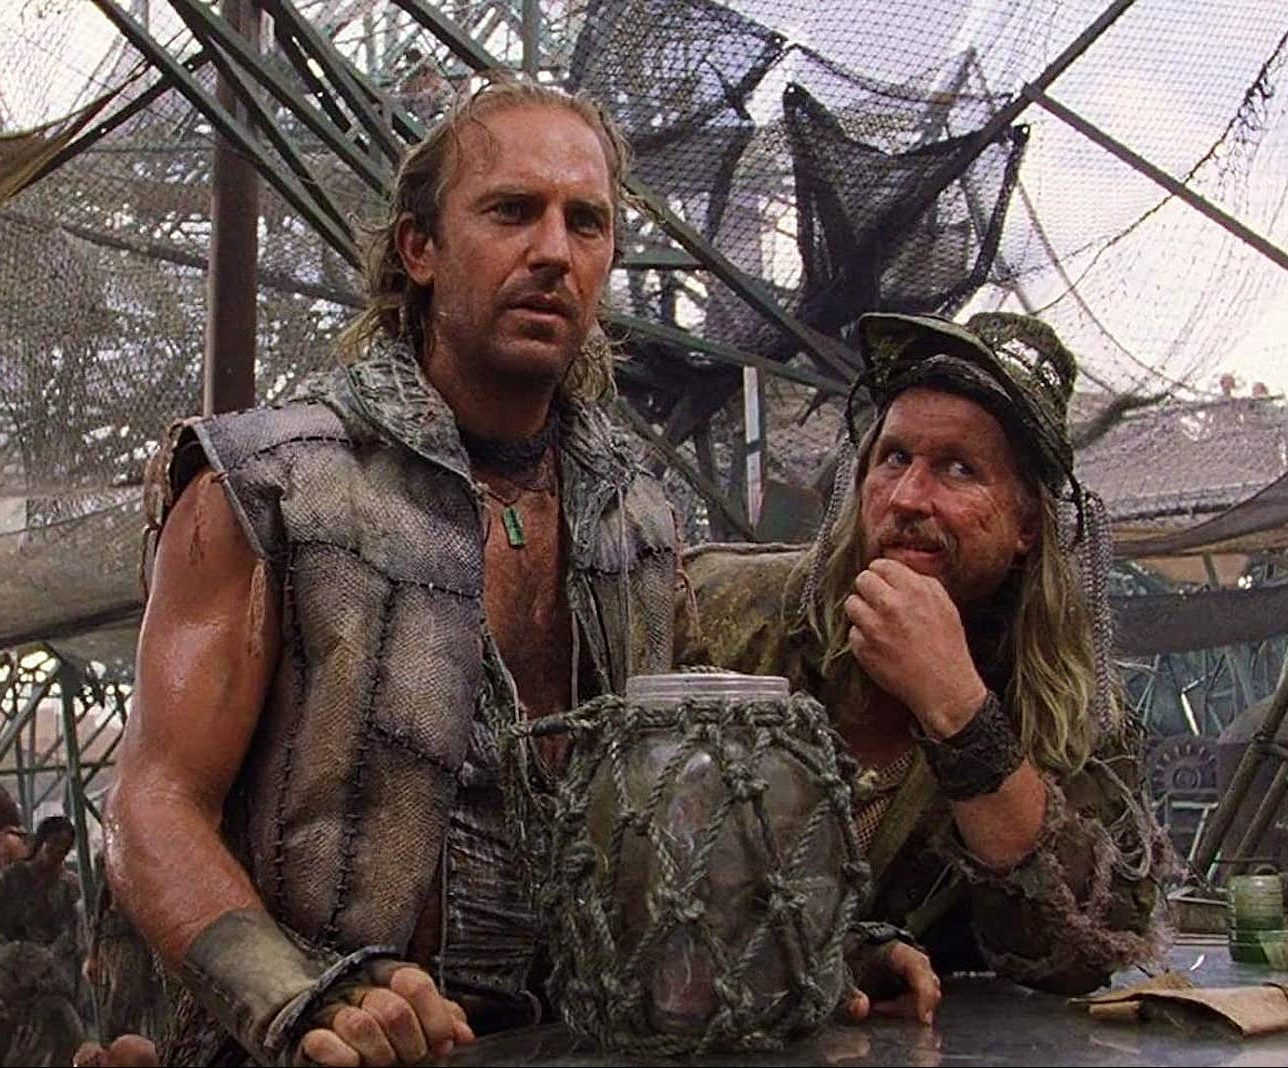 waterworld 1 e1612785775530 Waterworld: The Story Behind One Of The Biggest Hollywood Disasters Of All Time